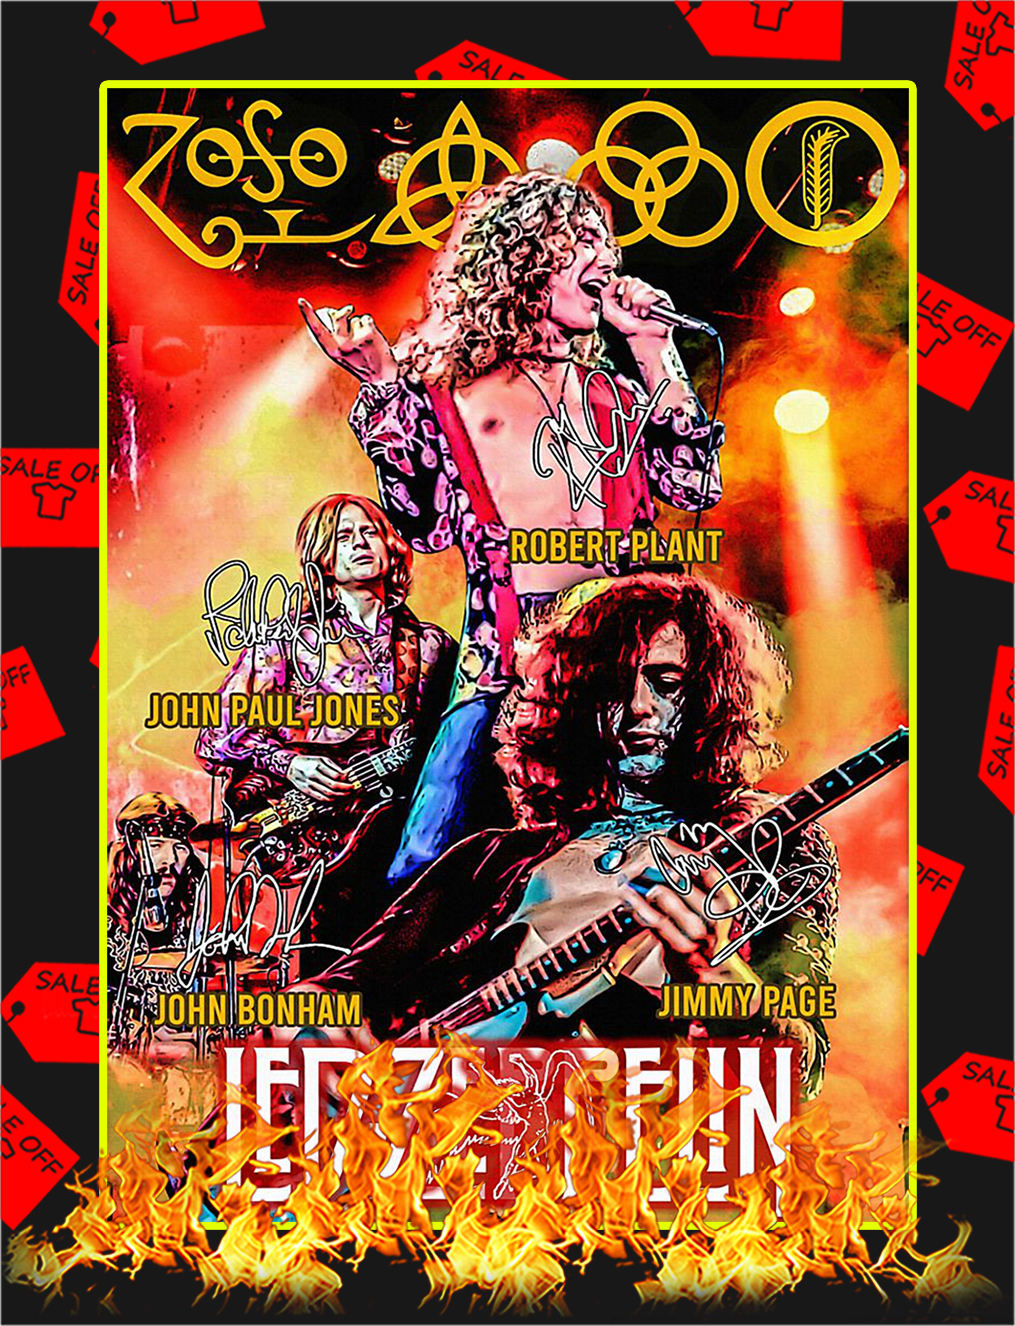 Led Zeppelin Signature Poster - A4